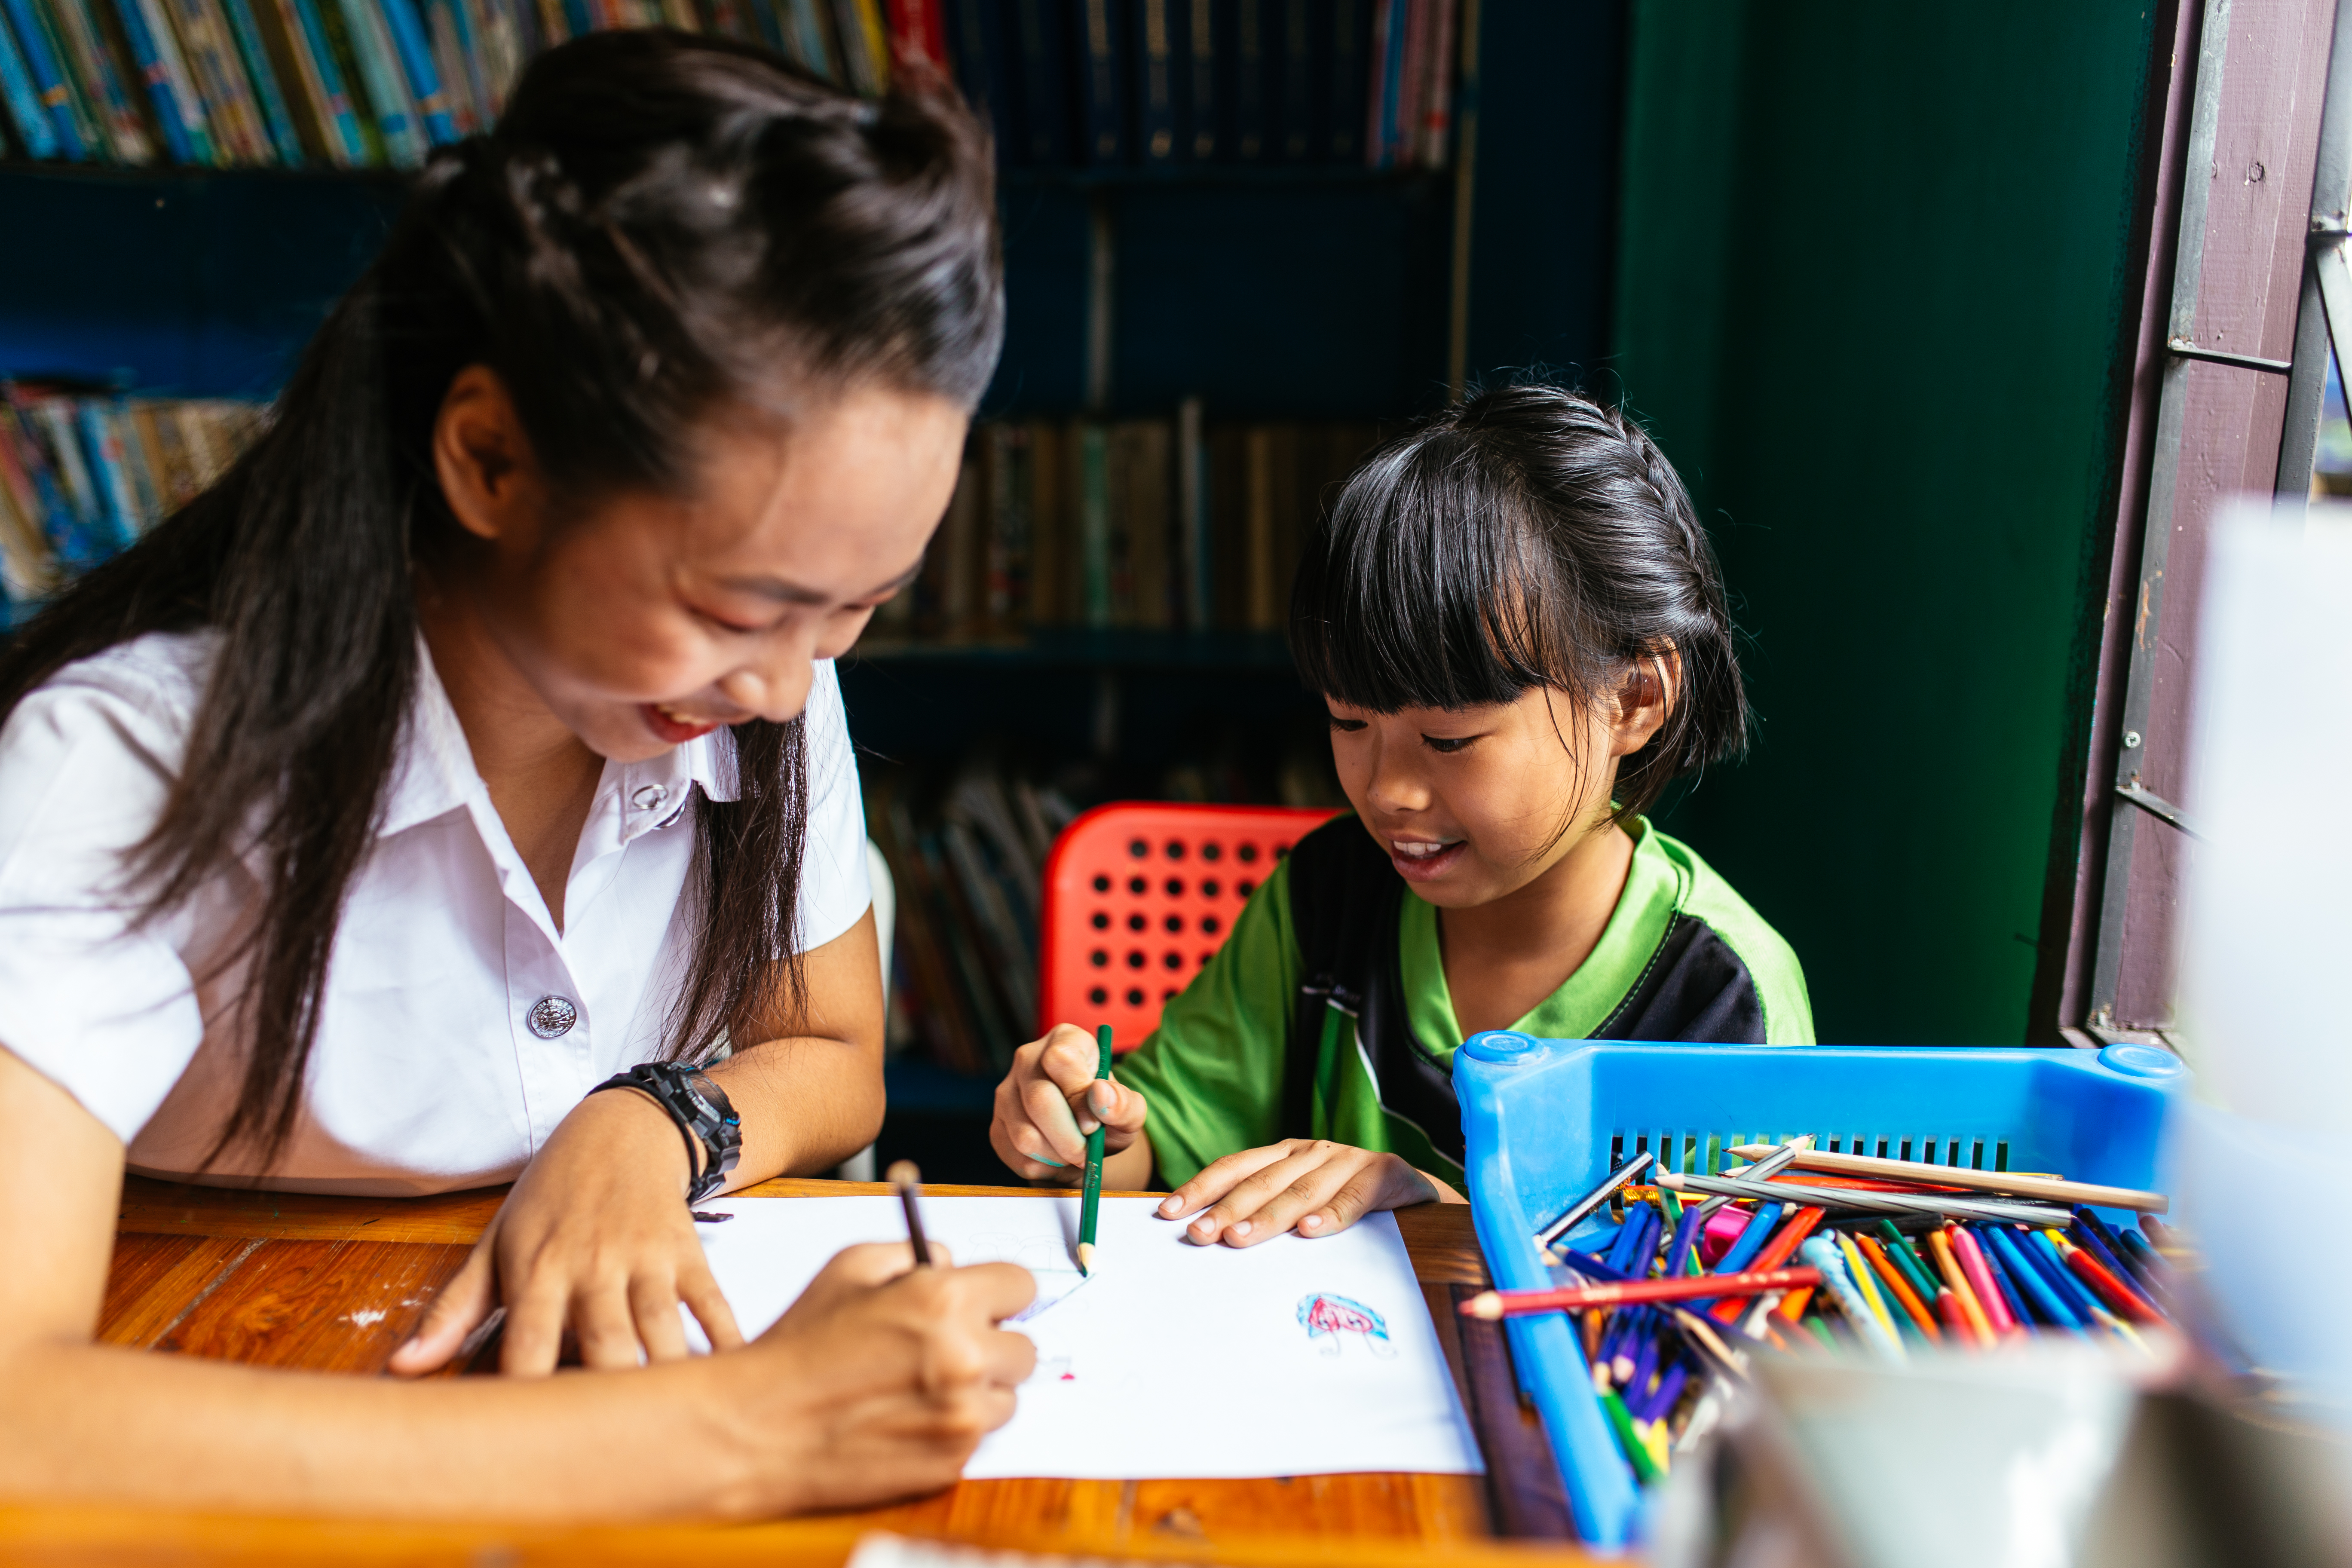 In a region in northern Thailand where more than half of all girls drop out of primary school, 16 students celebrate their graduation...and plan to continue their education.